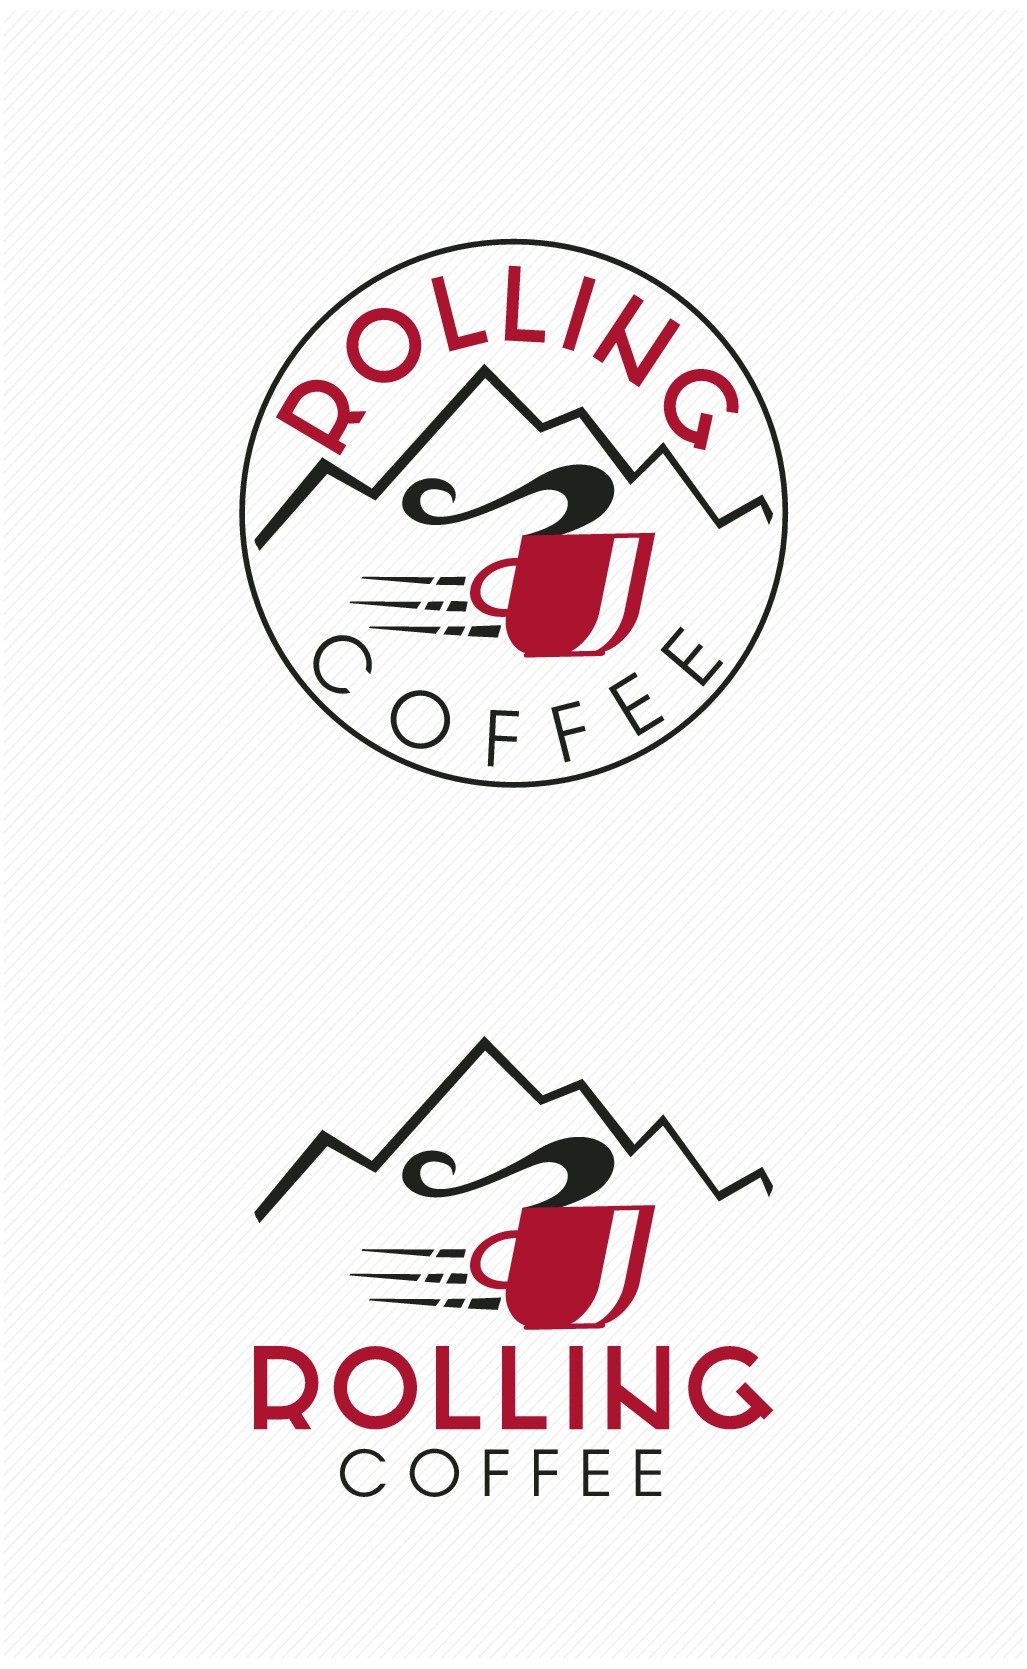 Create a logo that makes mobile coffee drinkers feel like home when travelling & drinking our coffee